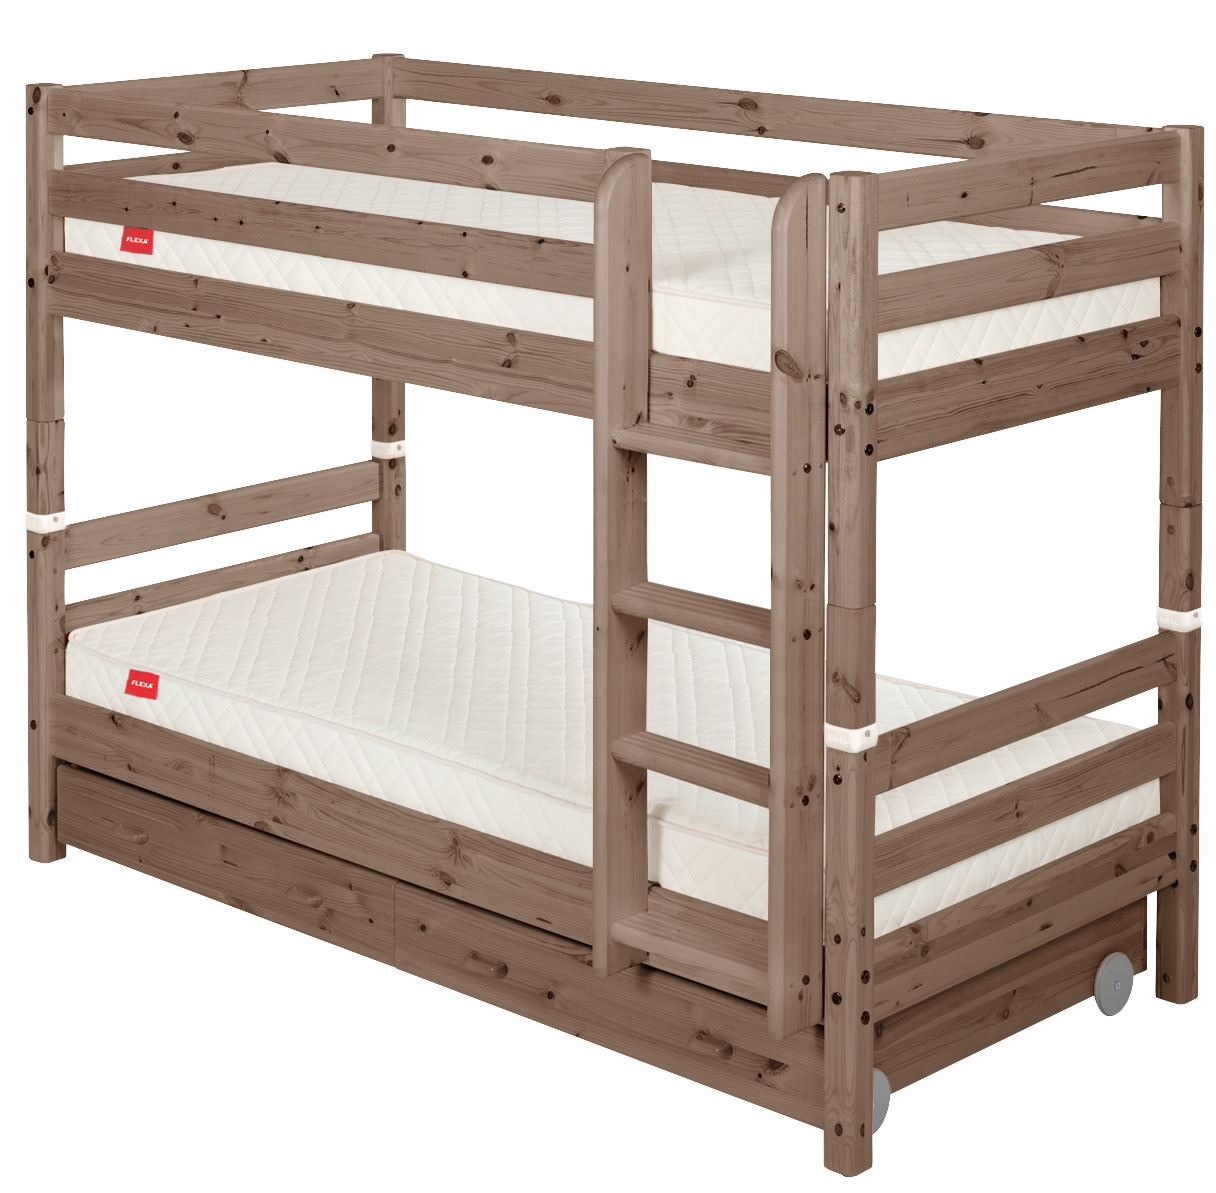 Flexa Classic Bunk bed with Drawers - Terra